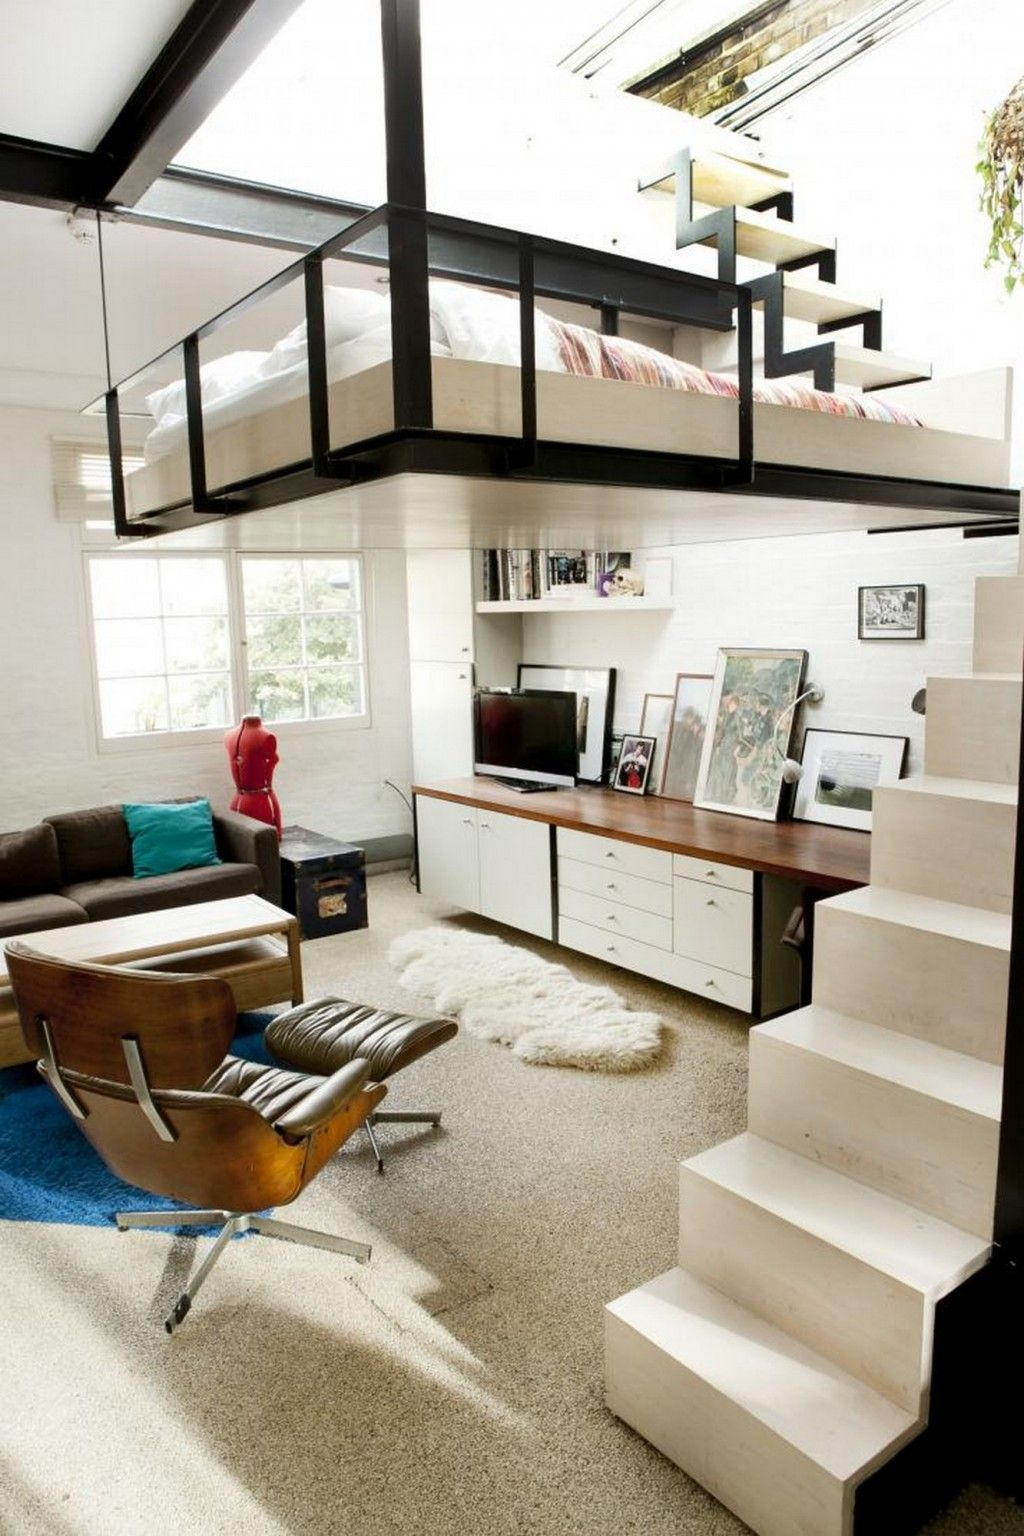 white small staircase leading to the suspended bedroom above modern compact living room design. Black Bedroom Furniture Sets. Home Design Ideas